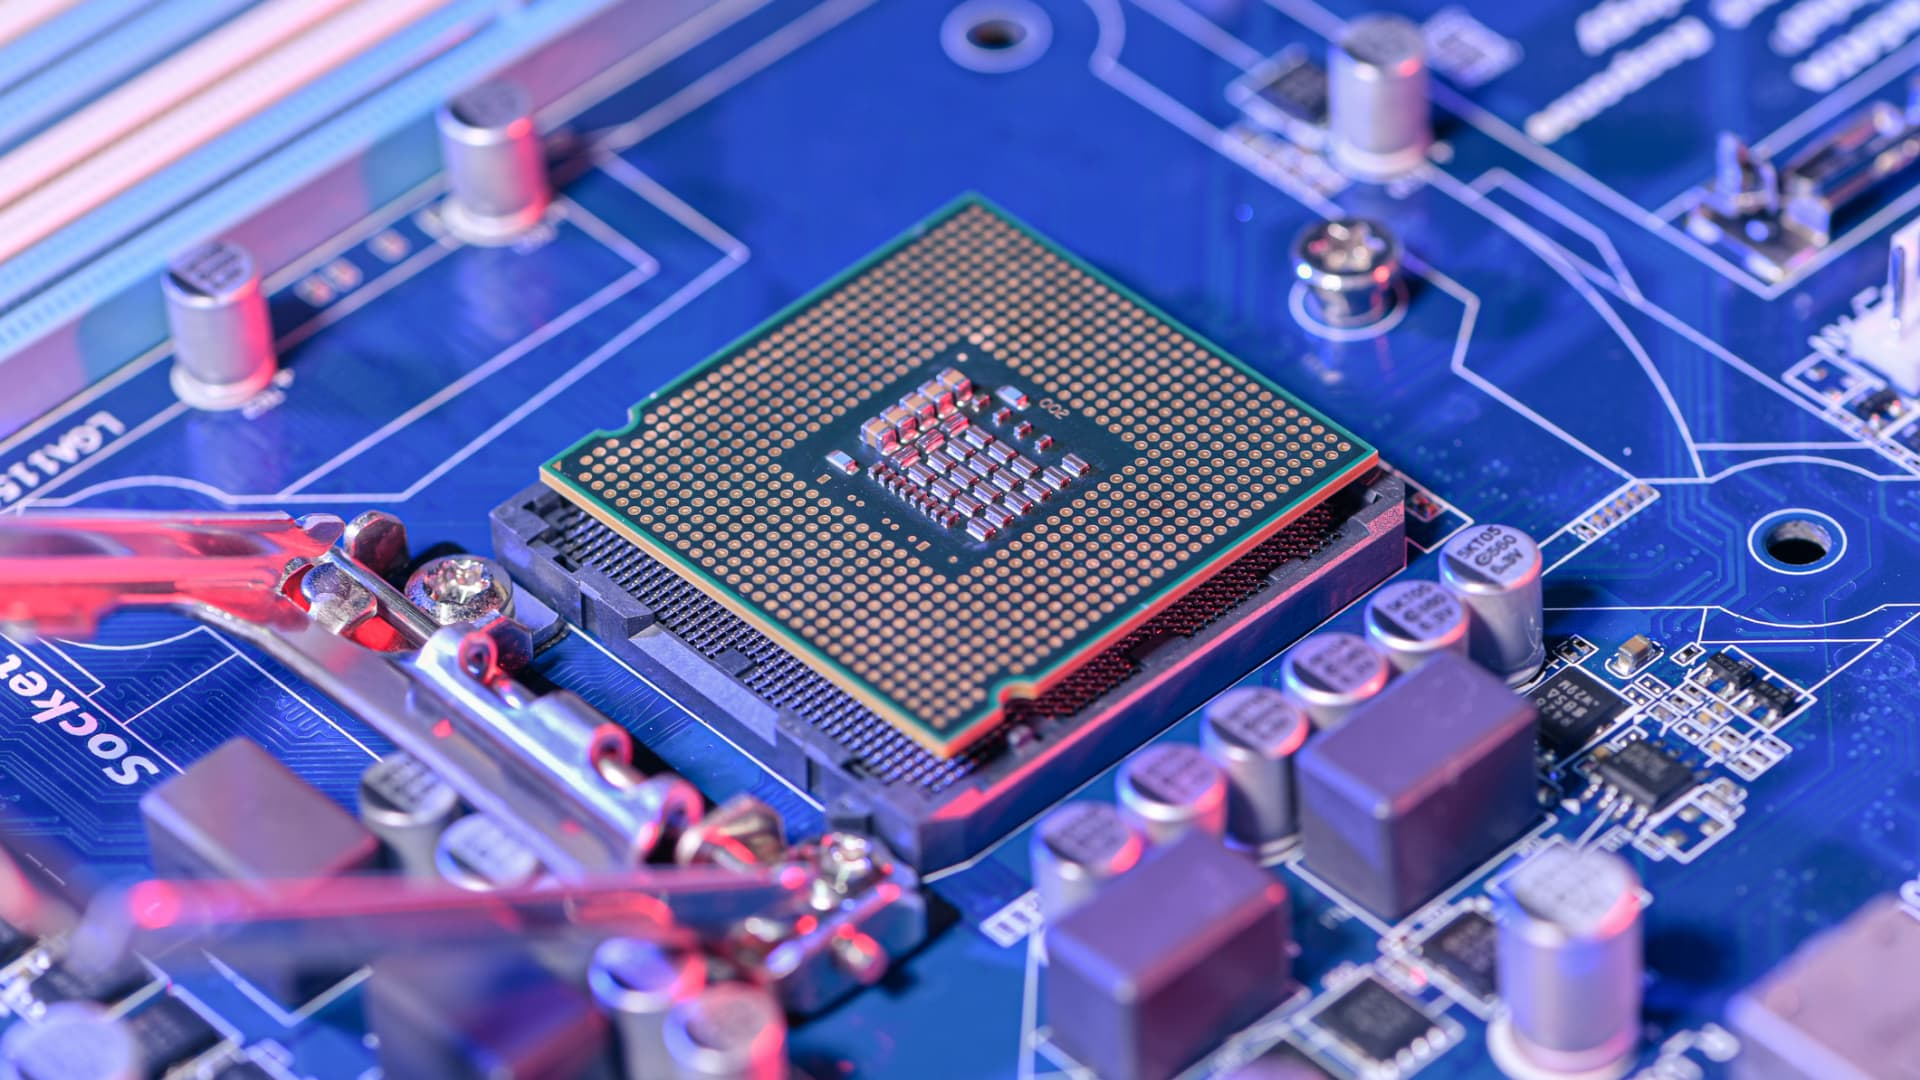 A close up image of a CPU socket and motherboard laying on the table.